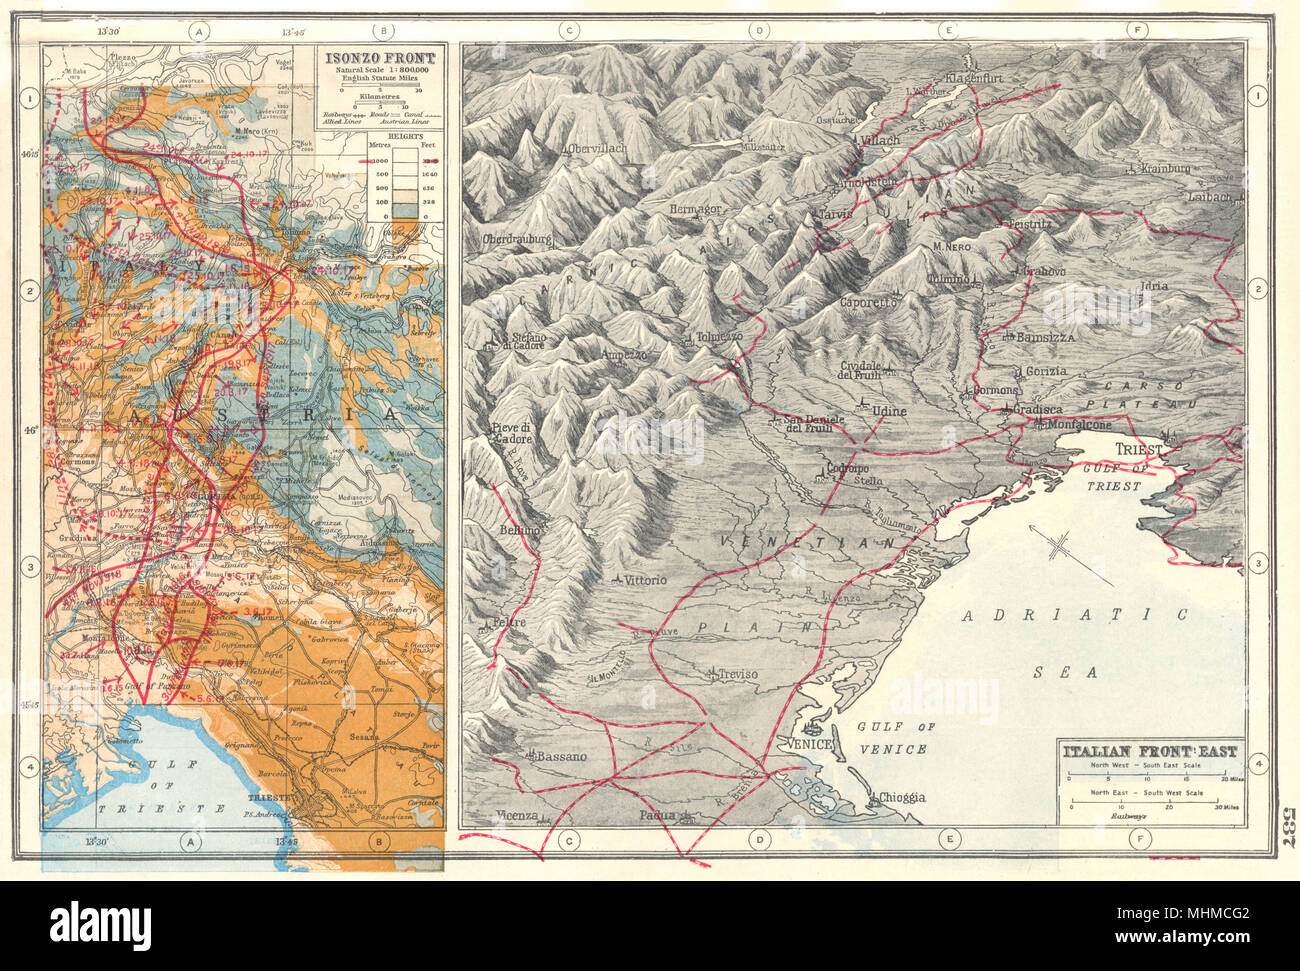 Italyalian front eastisonzo front first world war 1 battle italyalian front eastisonzo front first world war 1 battle lines 1920 map gumiabroncs Image collections